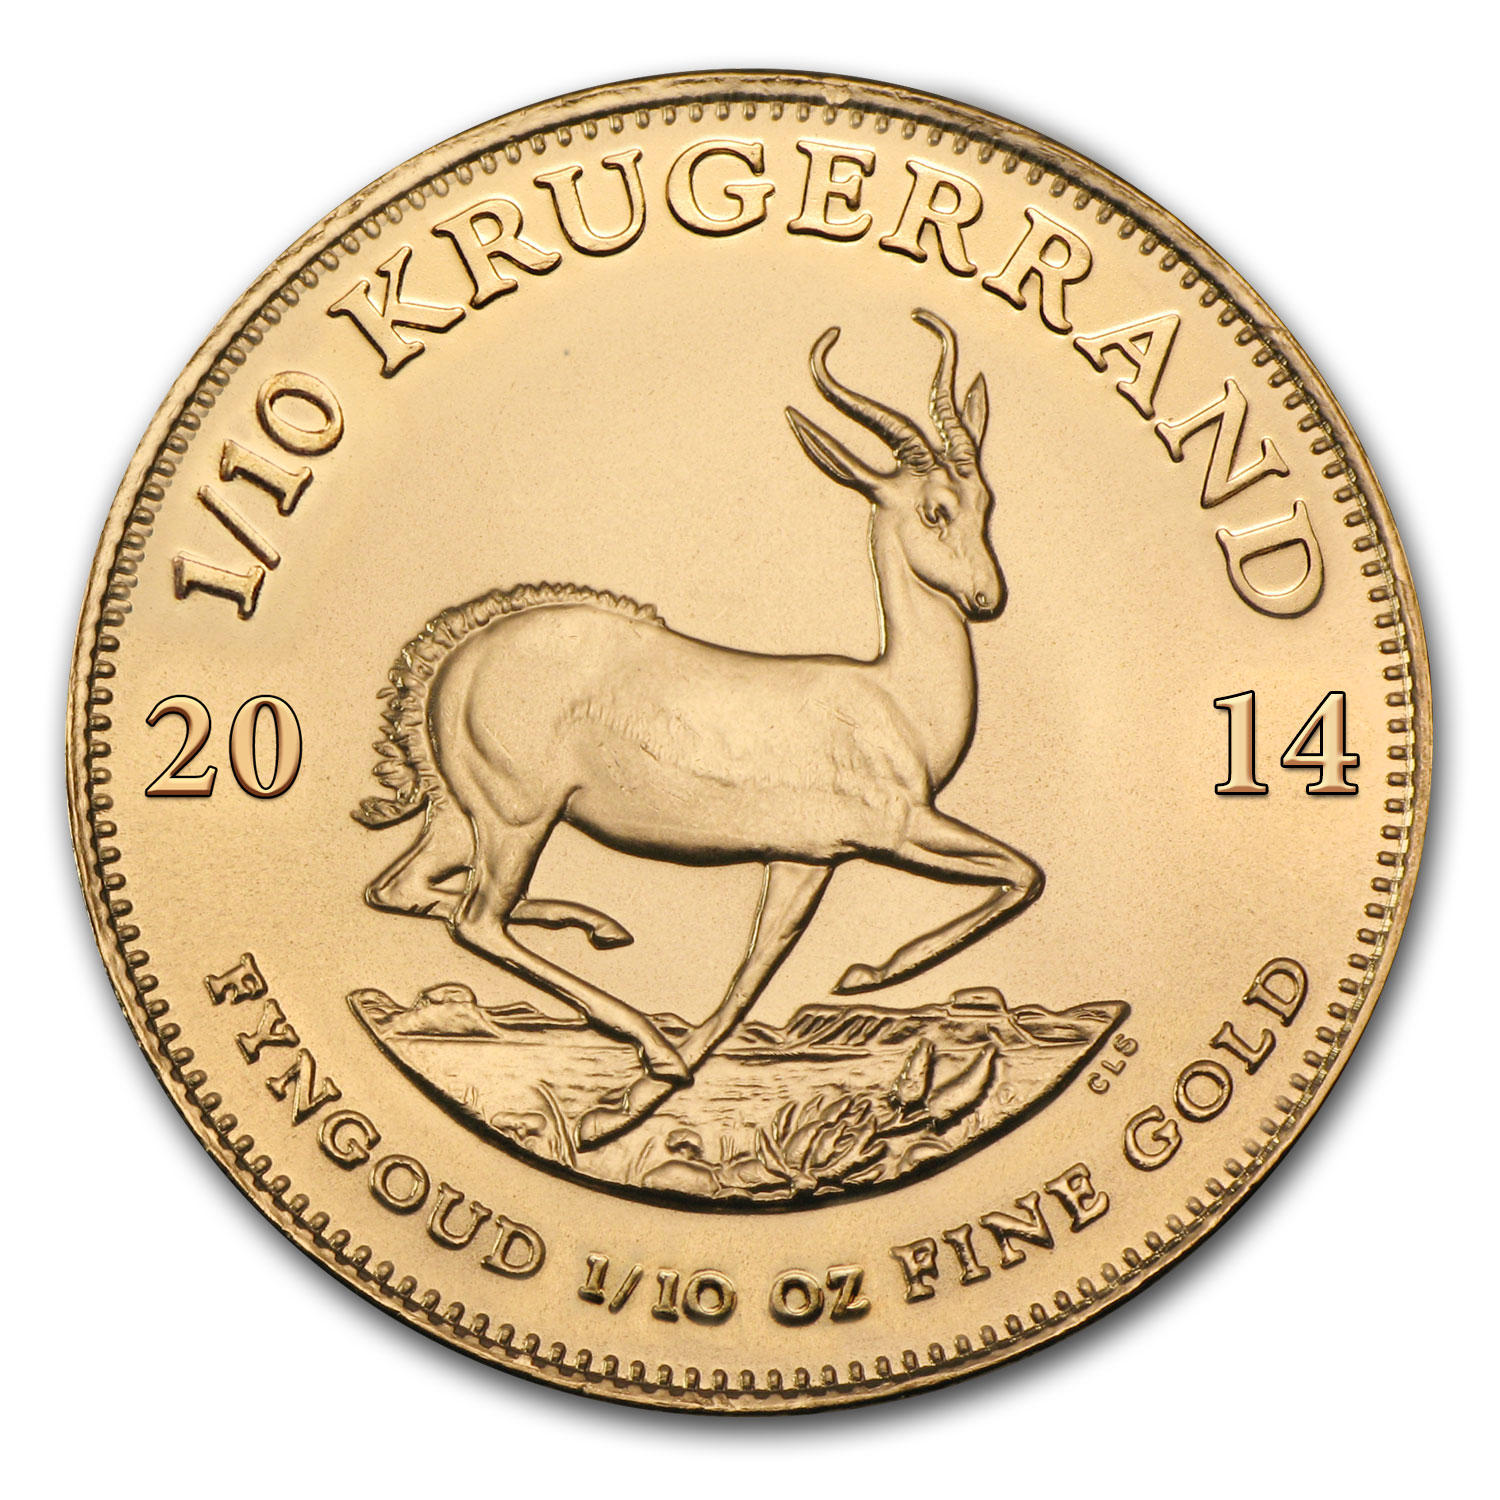 2014 1/10 oz Gold South African Krugerrand